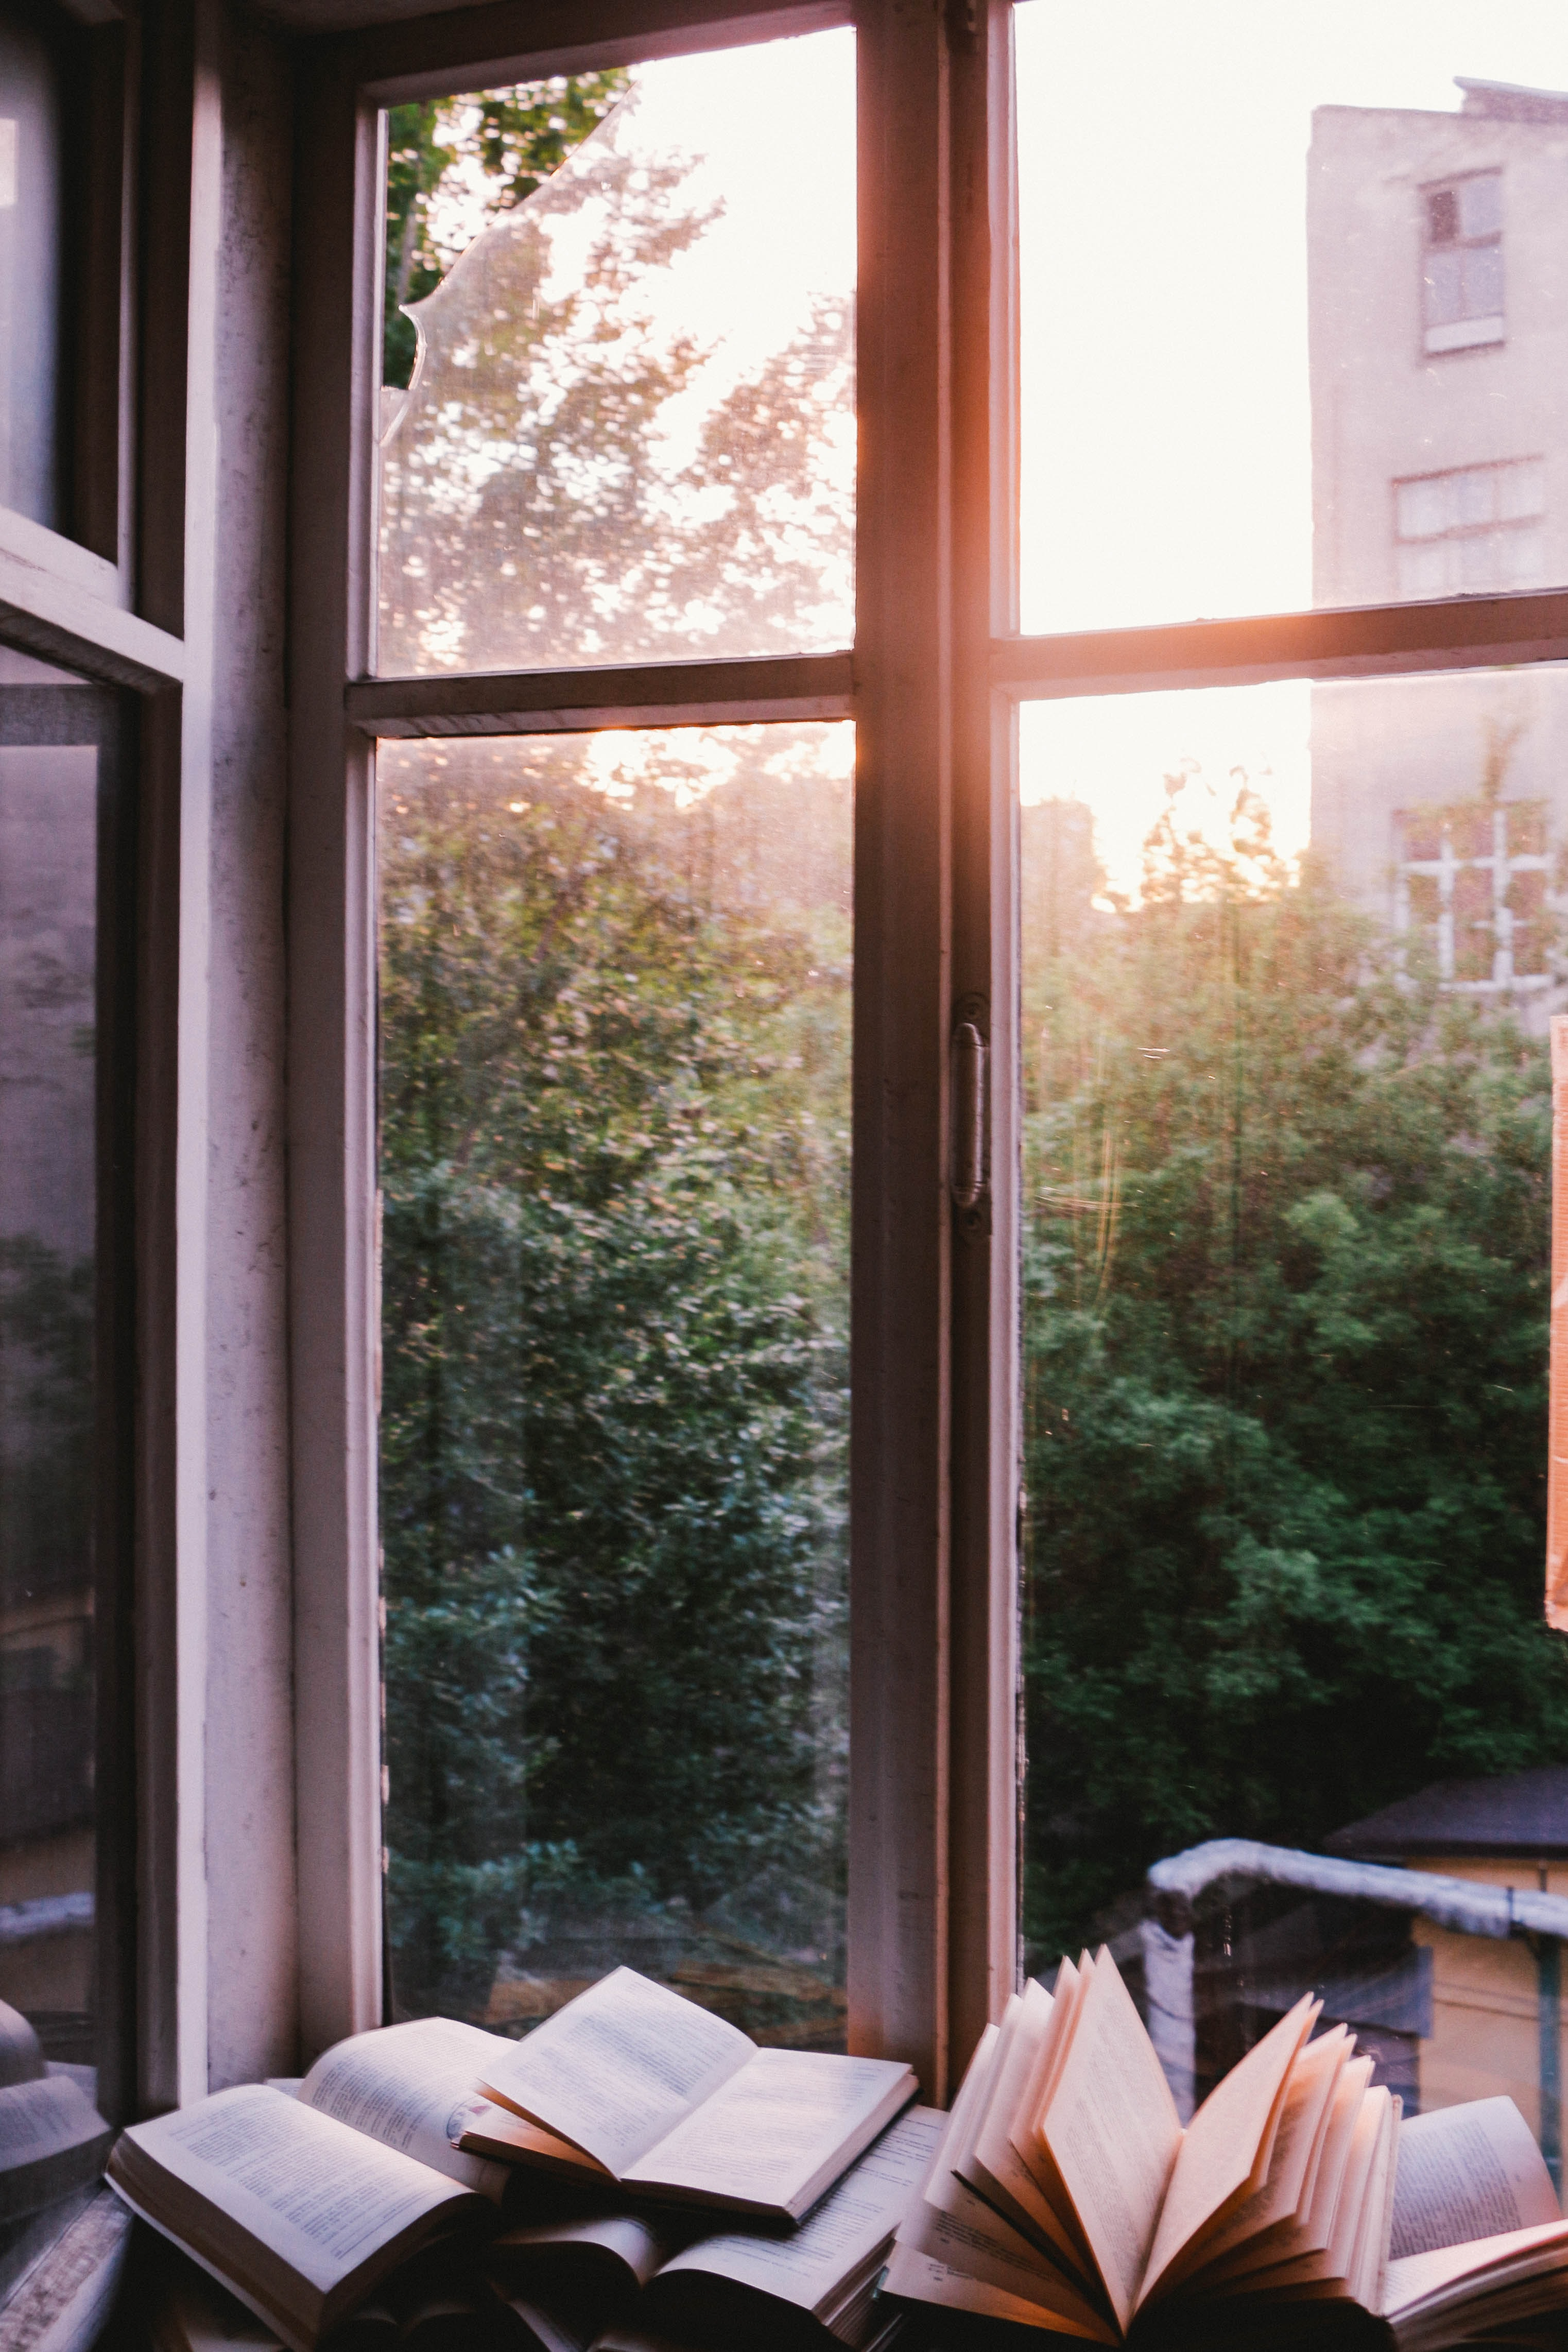 books beside window during sunset